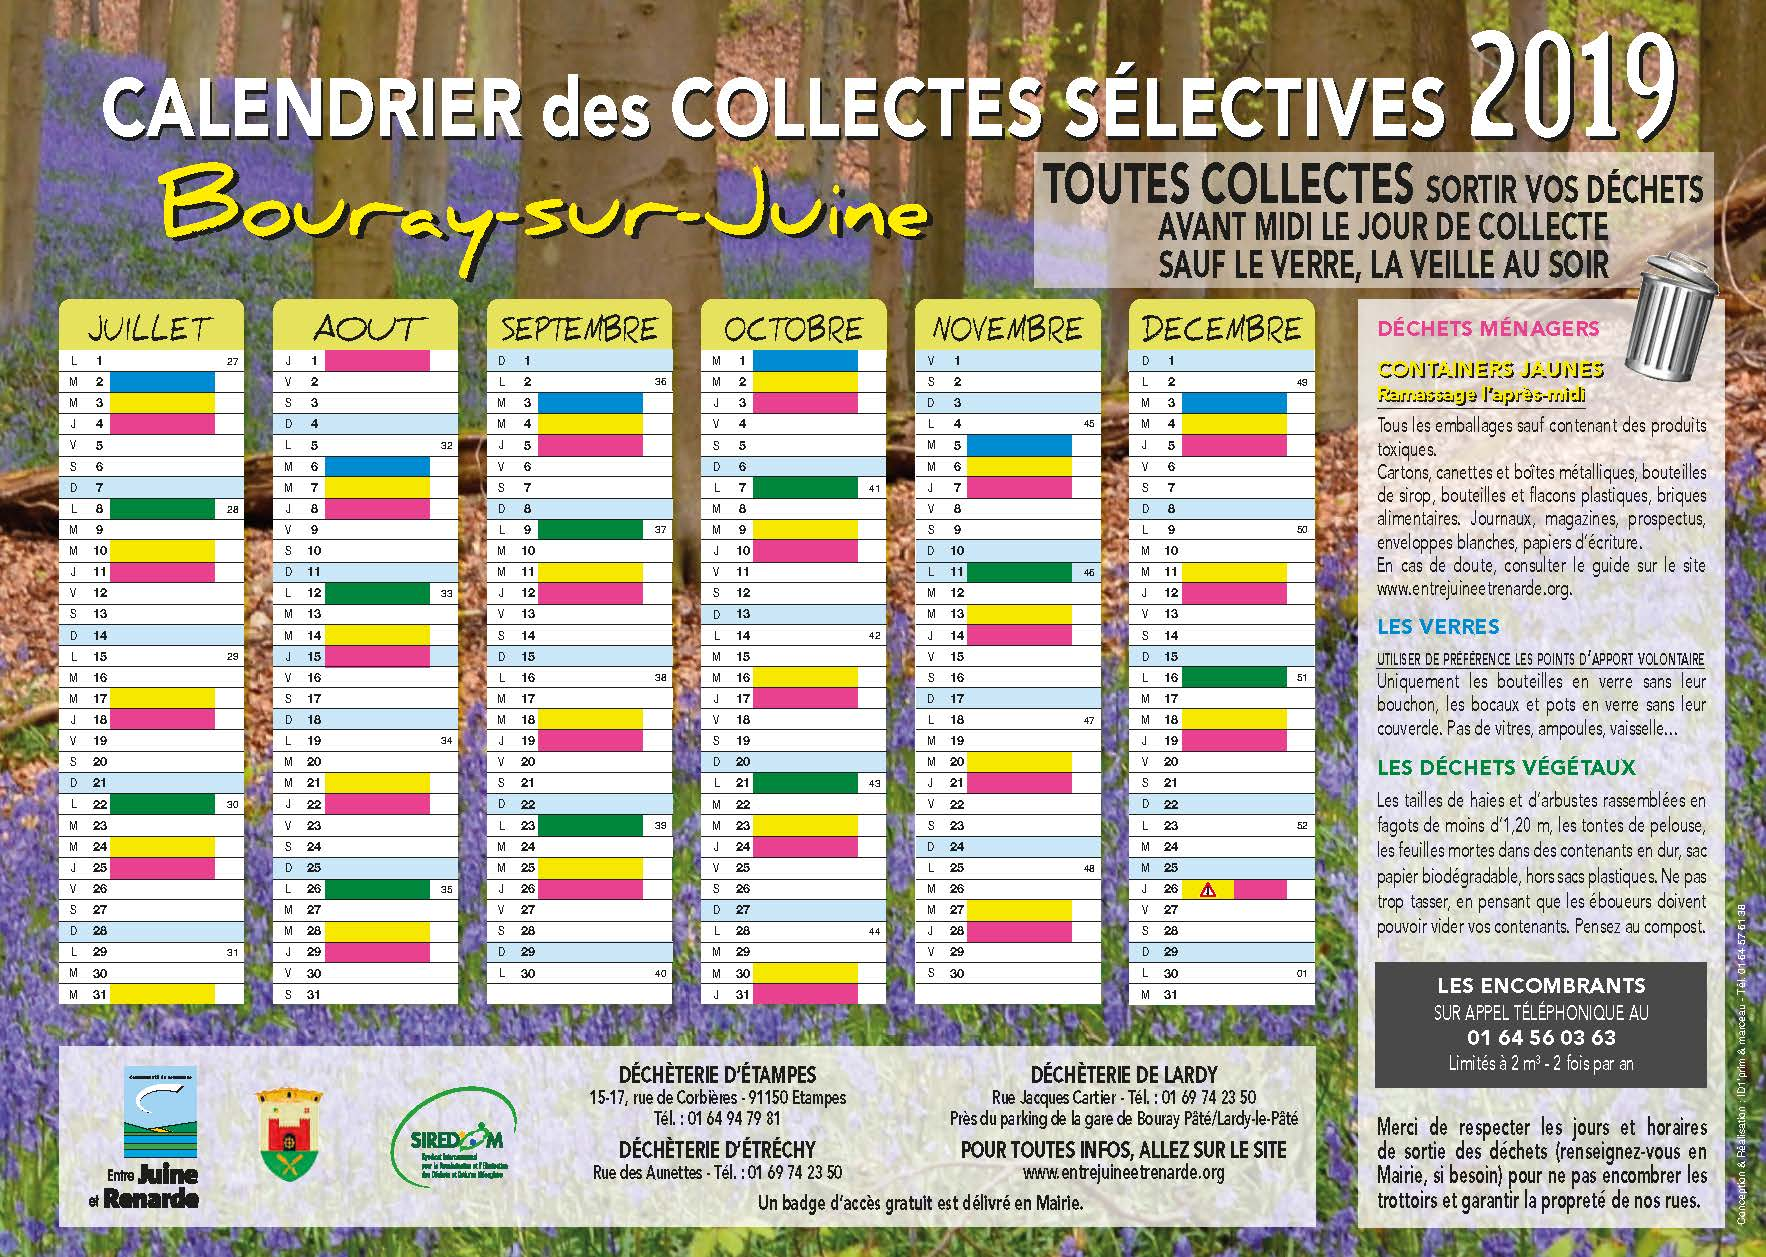 CCJR - Calendrier Bouray-sur-Juine 2019 A4 Recto Verso Page 2